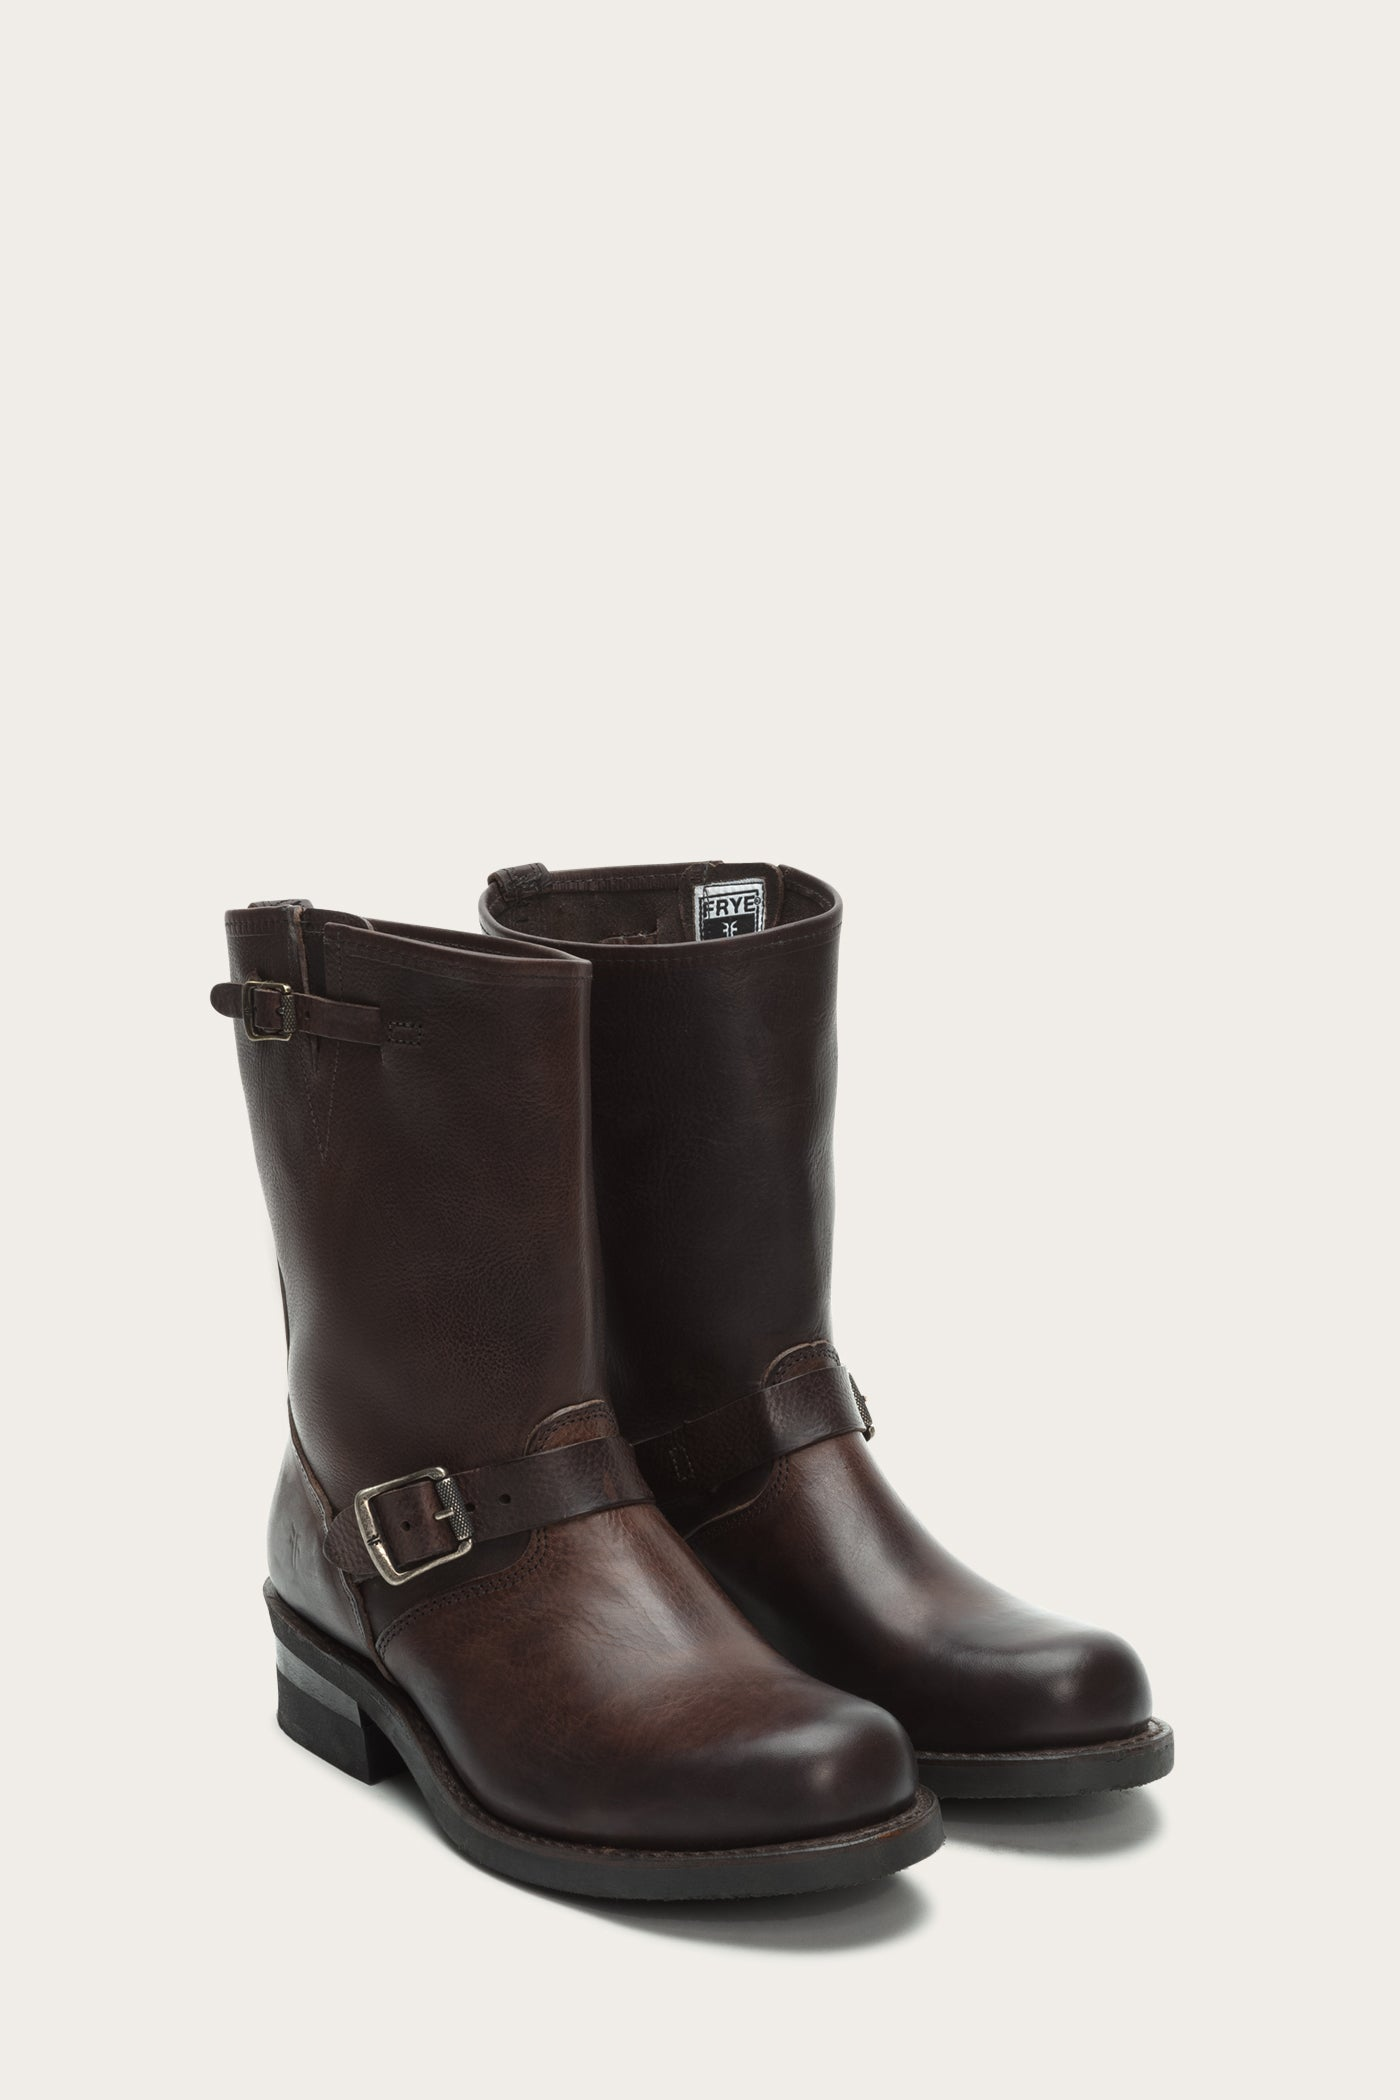 Frye Men/'s Engineer 12R Boots 87799 Redwood leather various sizes